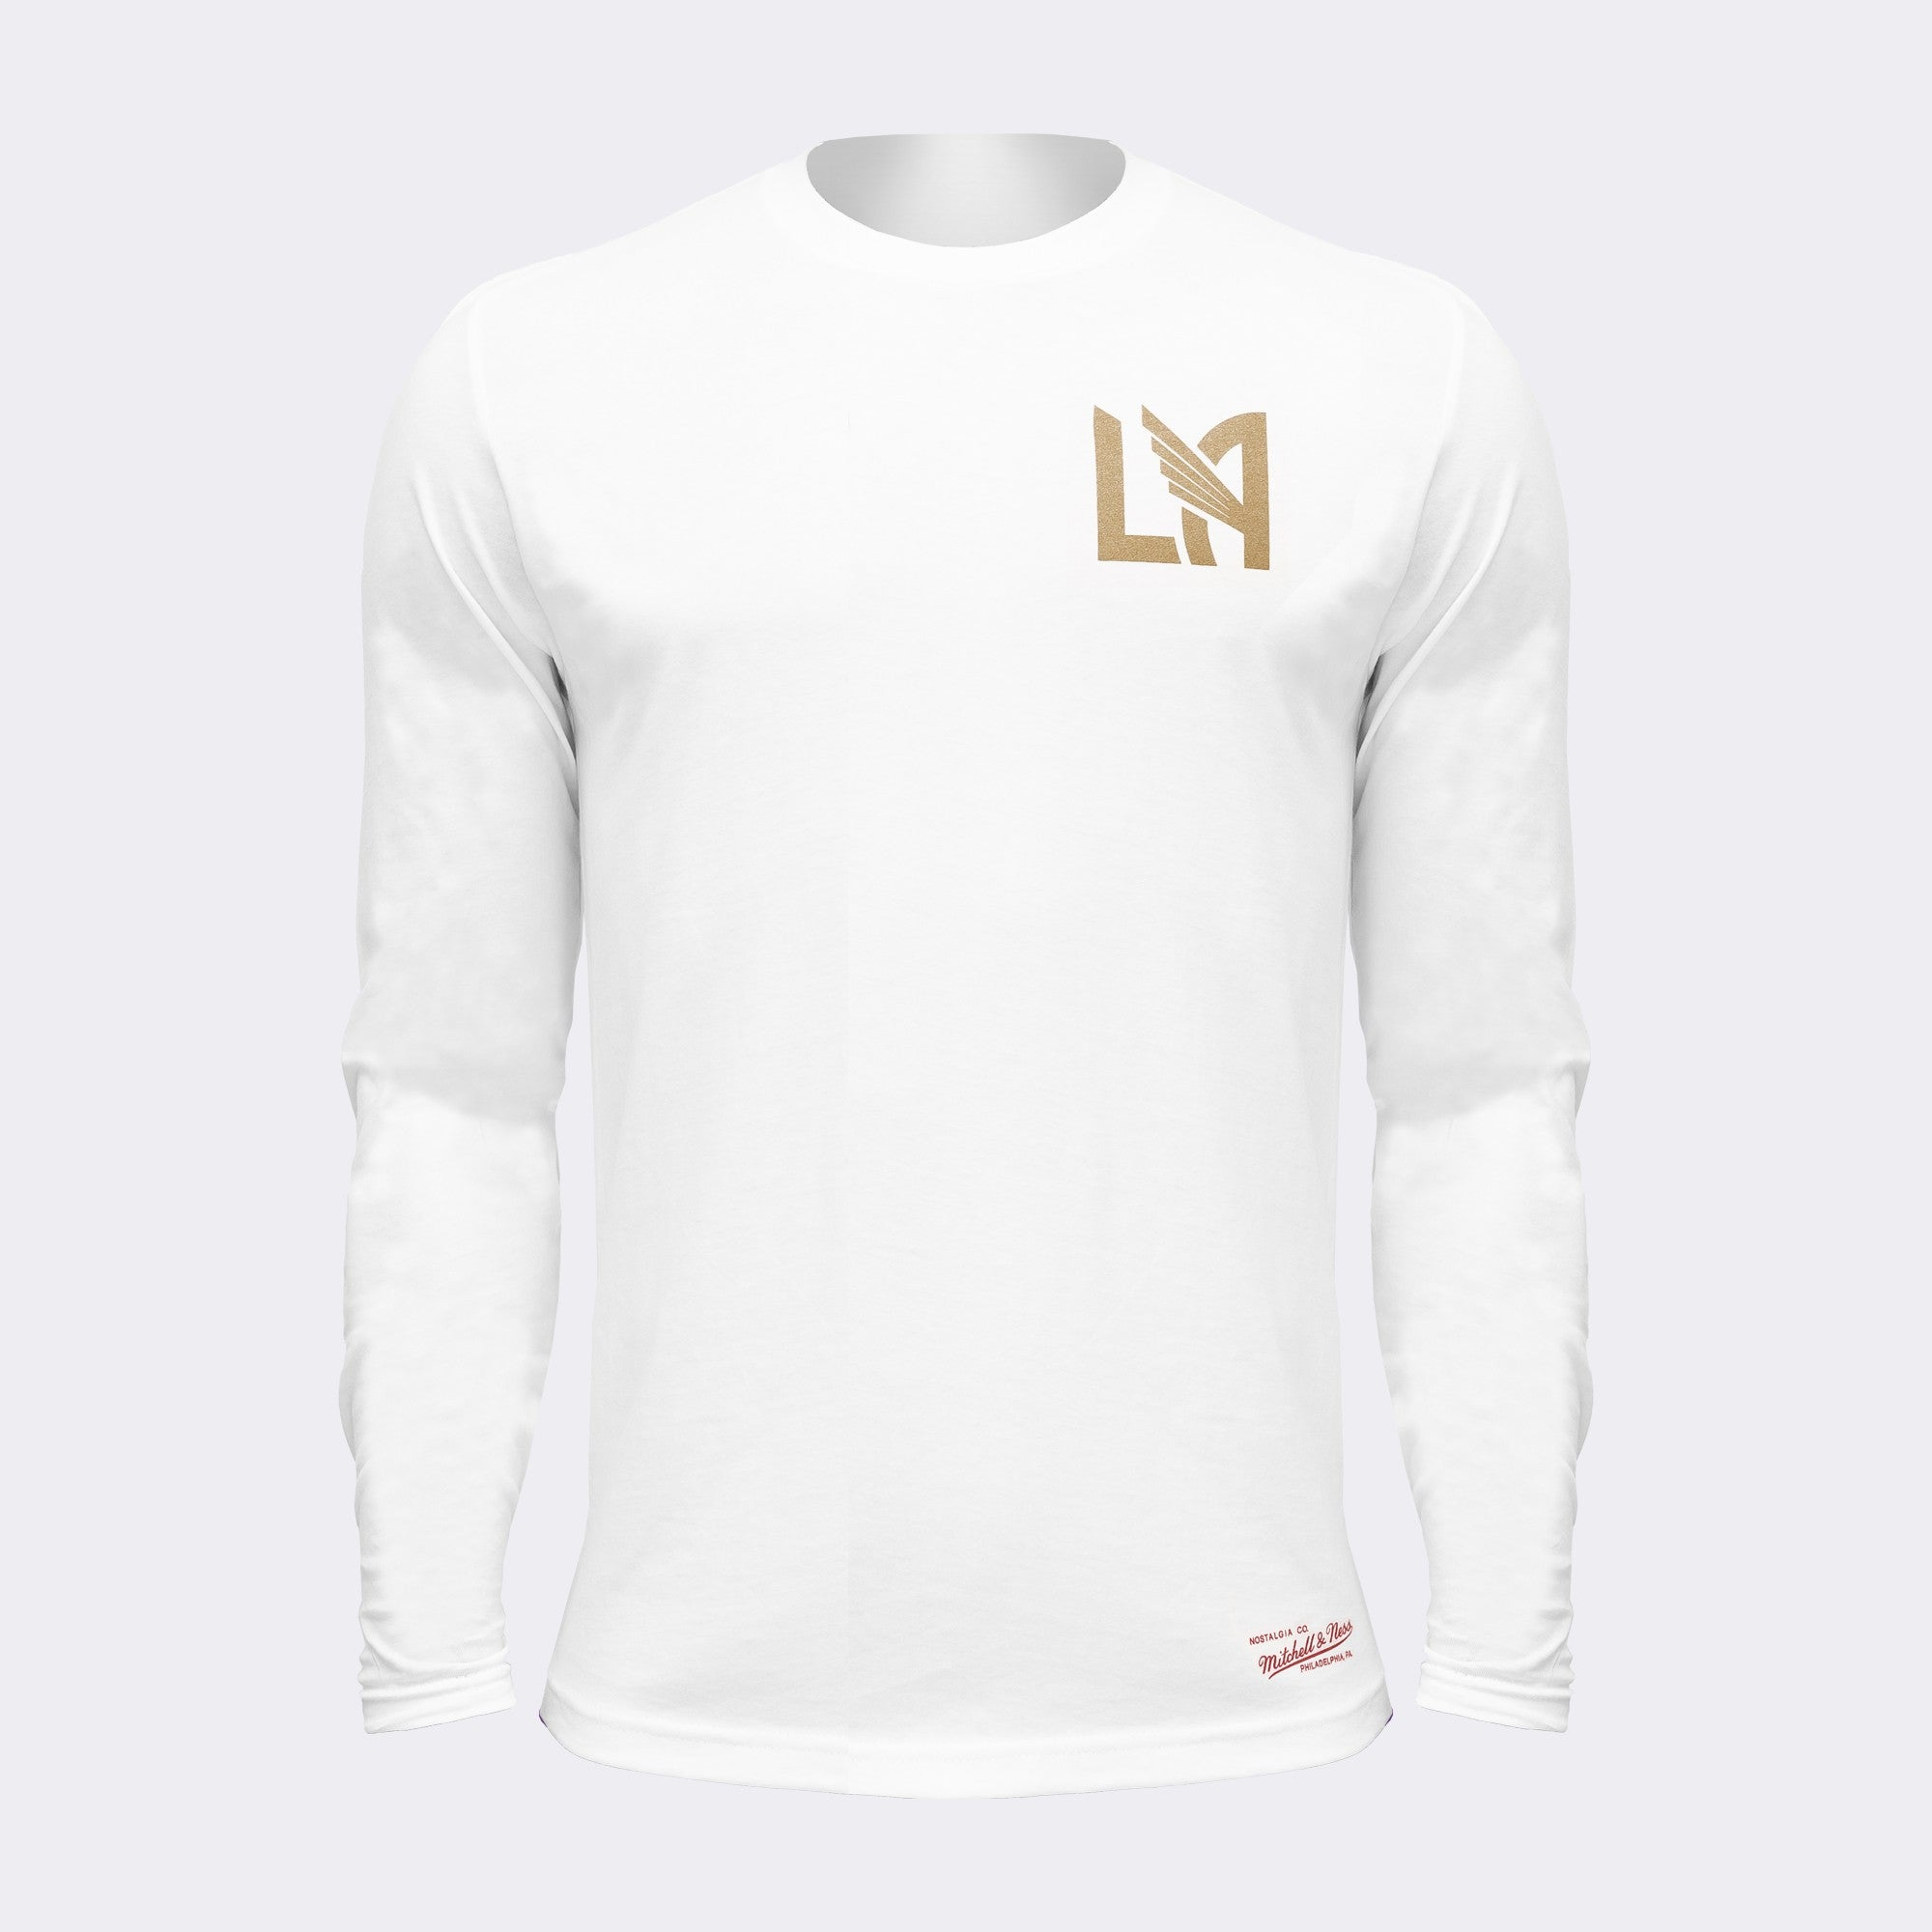 LAFC Heart of Los Angeles Long Sleeve Tee - White/Gray/Gold